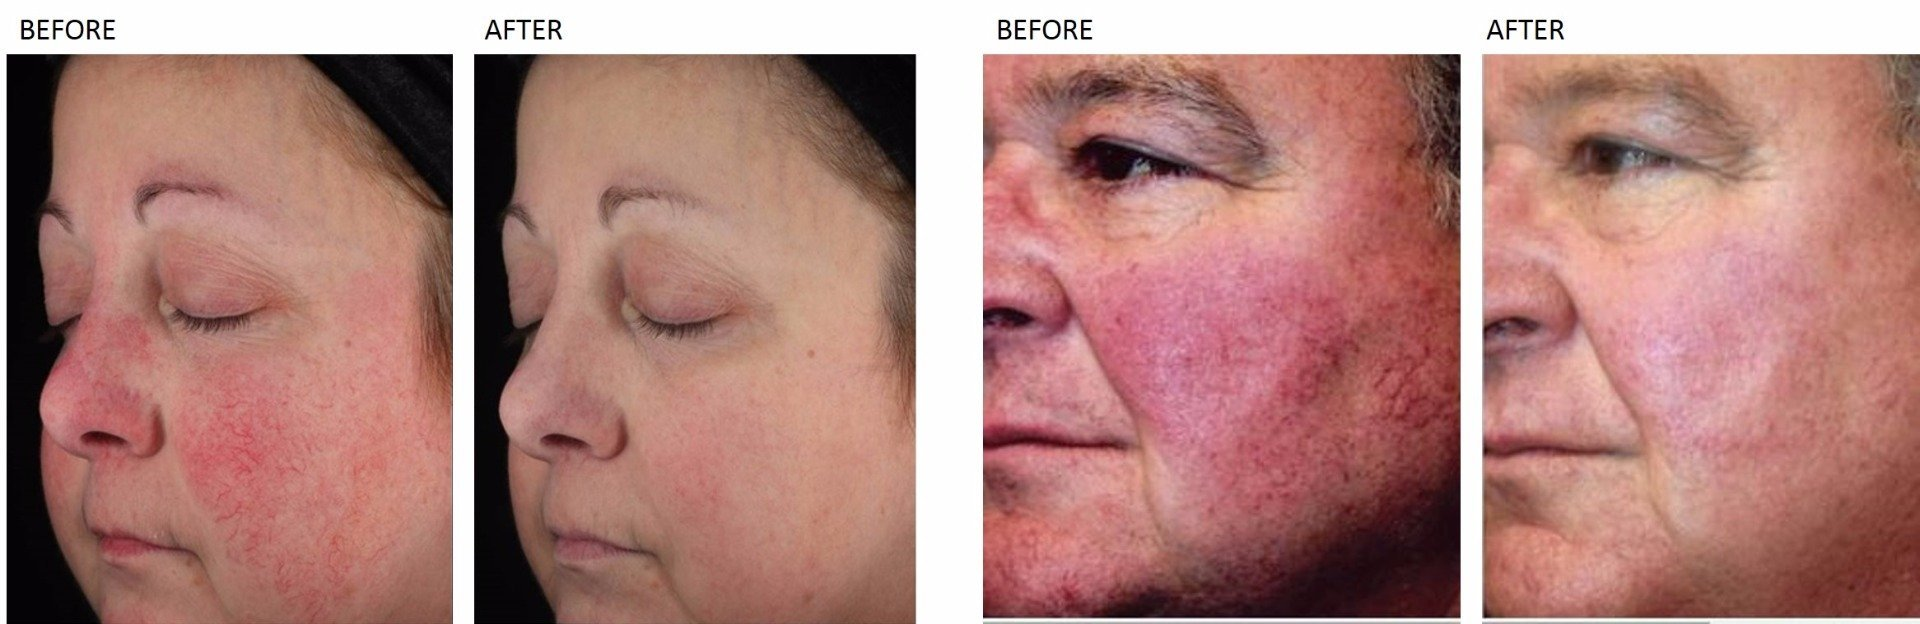 Rosacea Treatment at Total Body Care